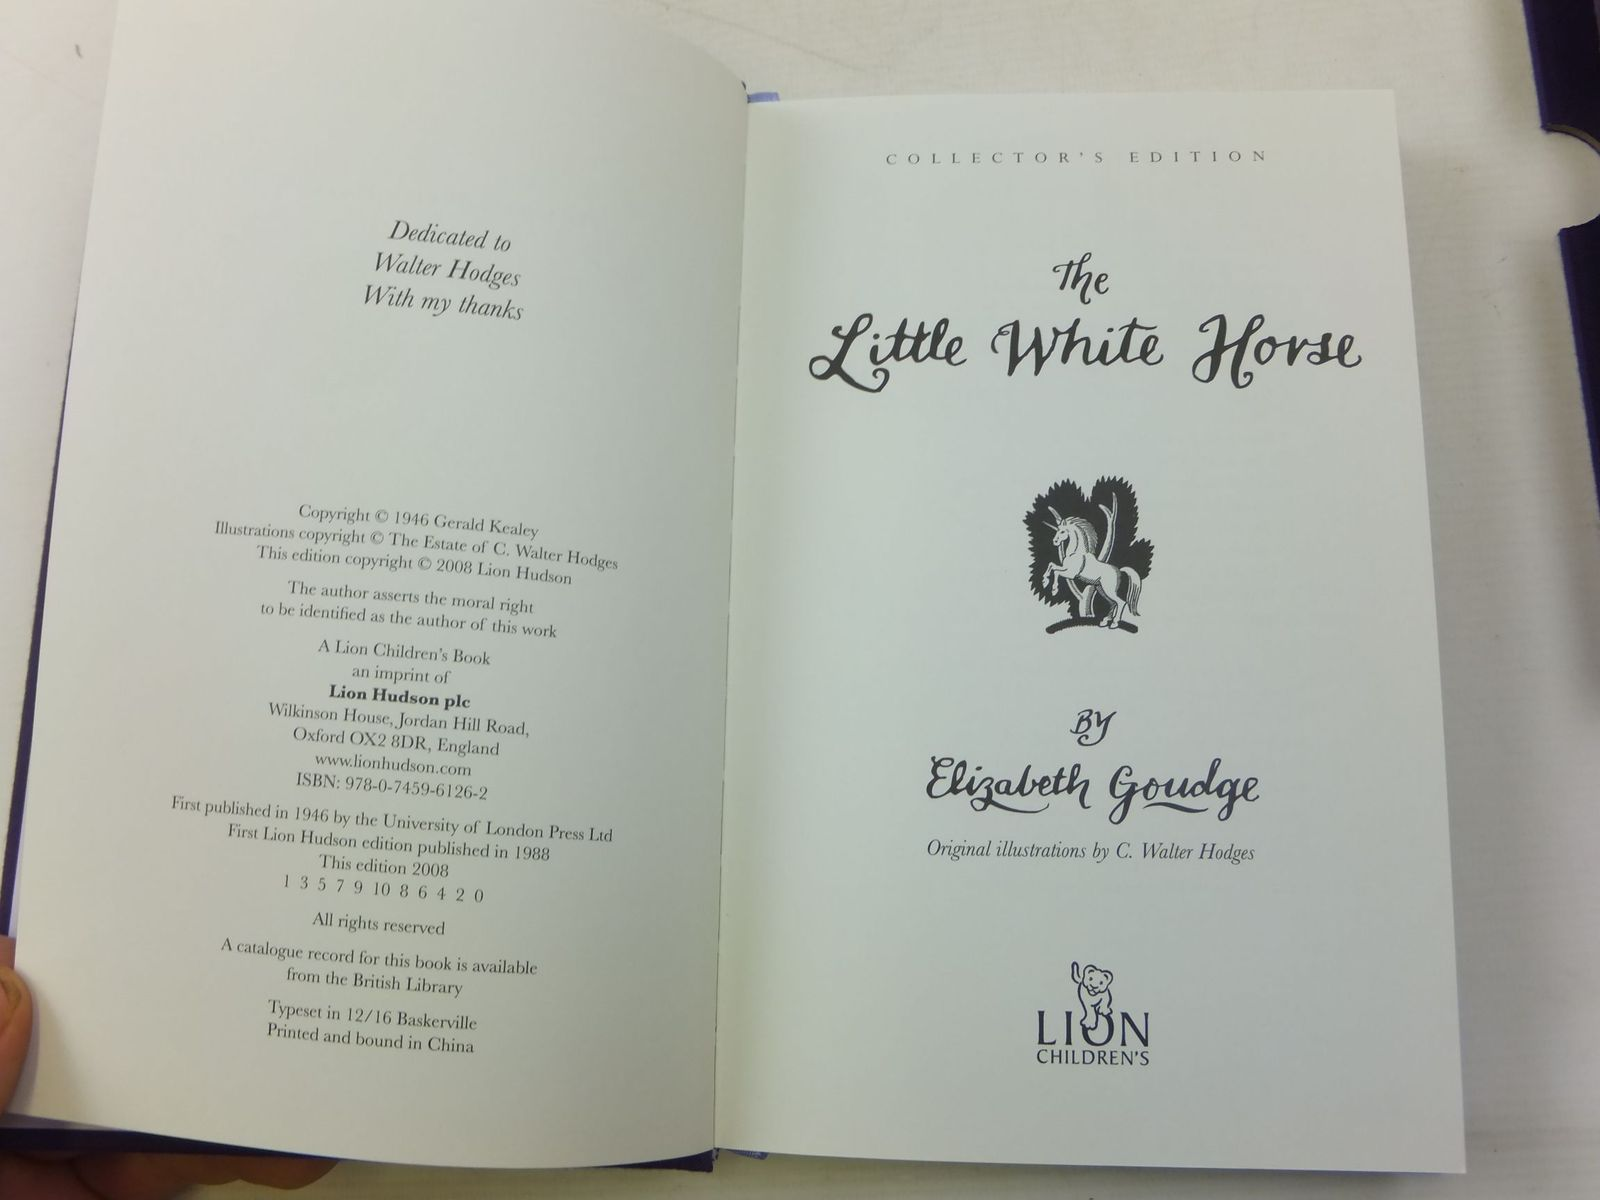 Stella Rose S Books The Little White Horse Written By Elizabeth Goudge Stock Code 1807965